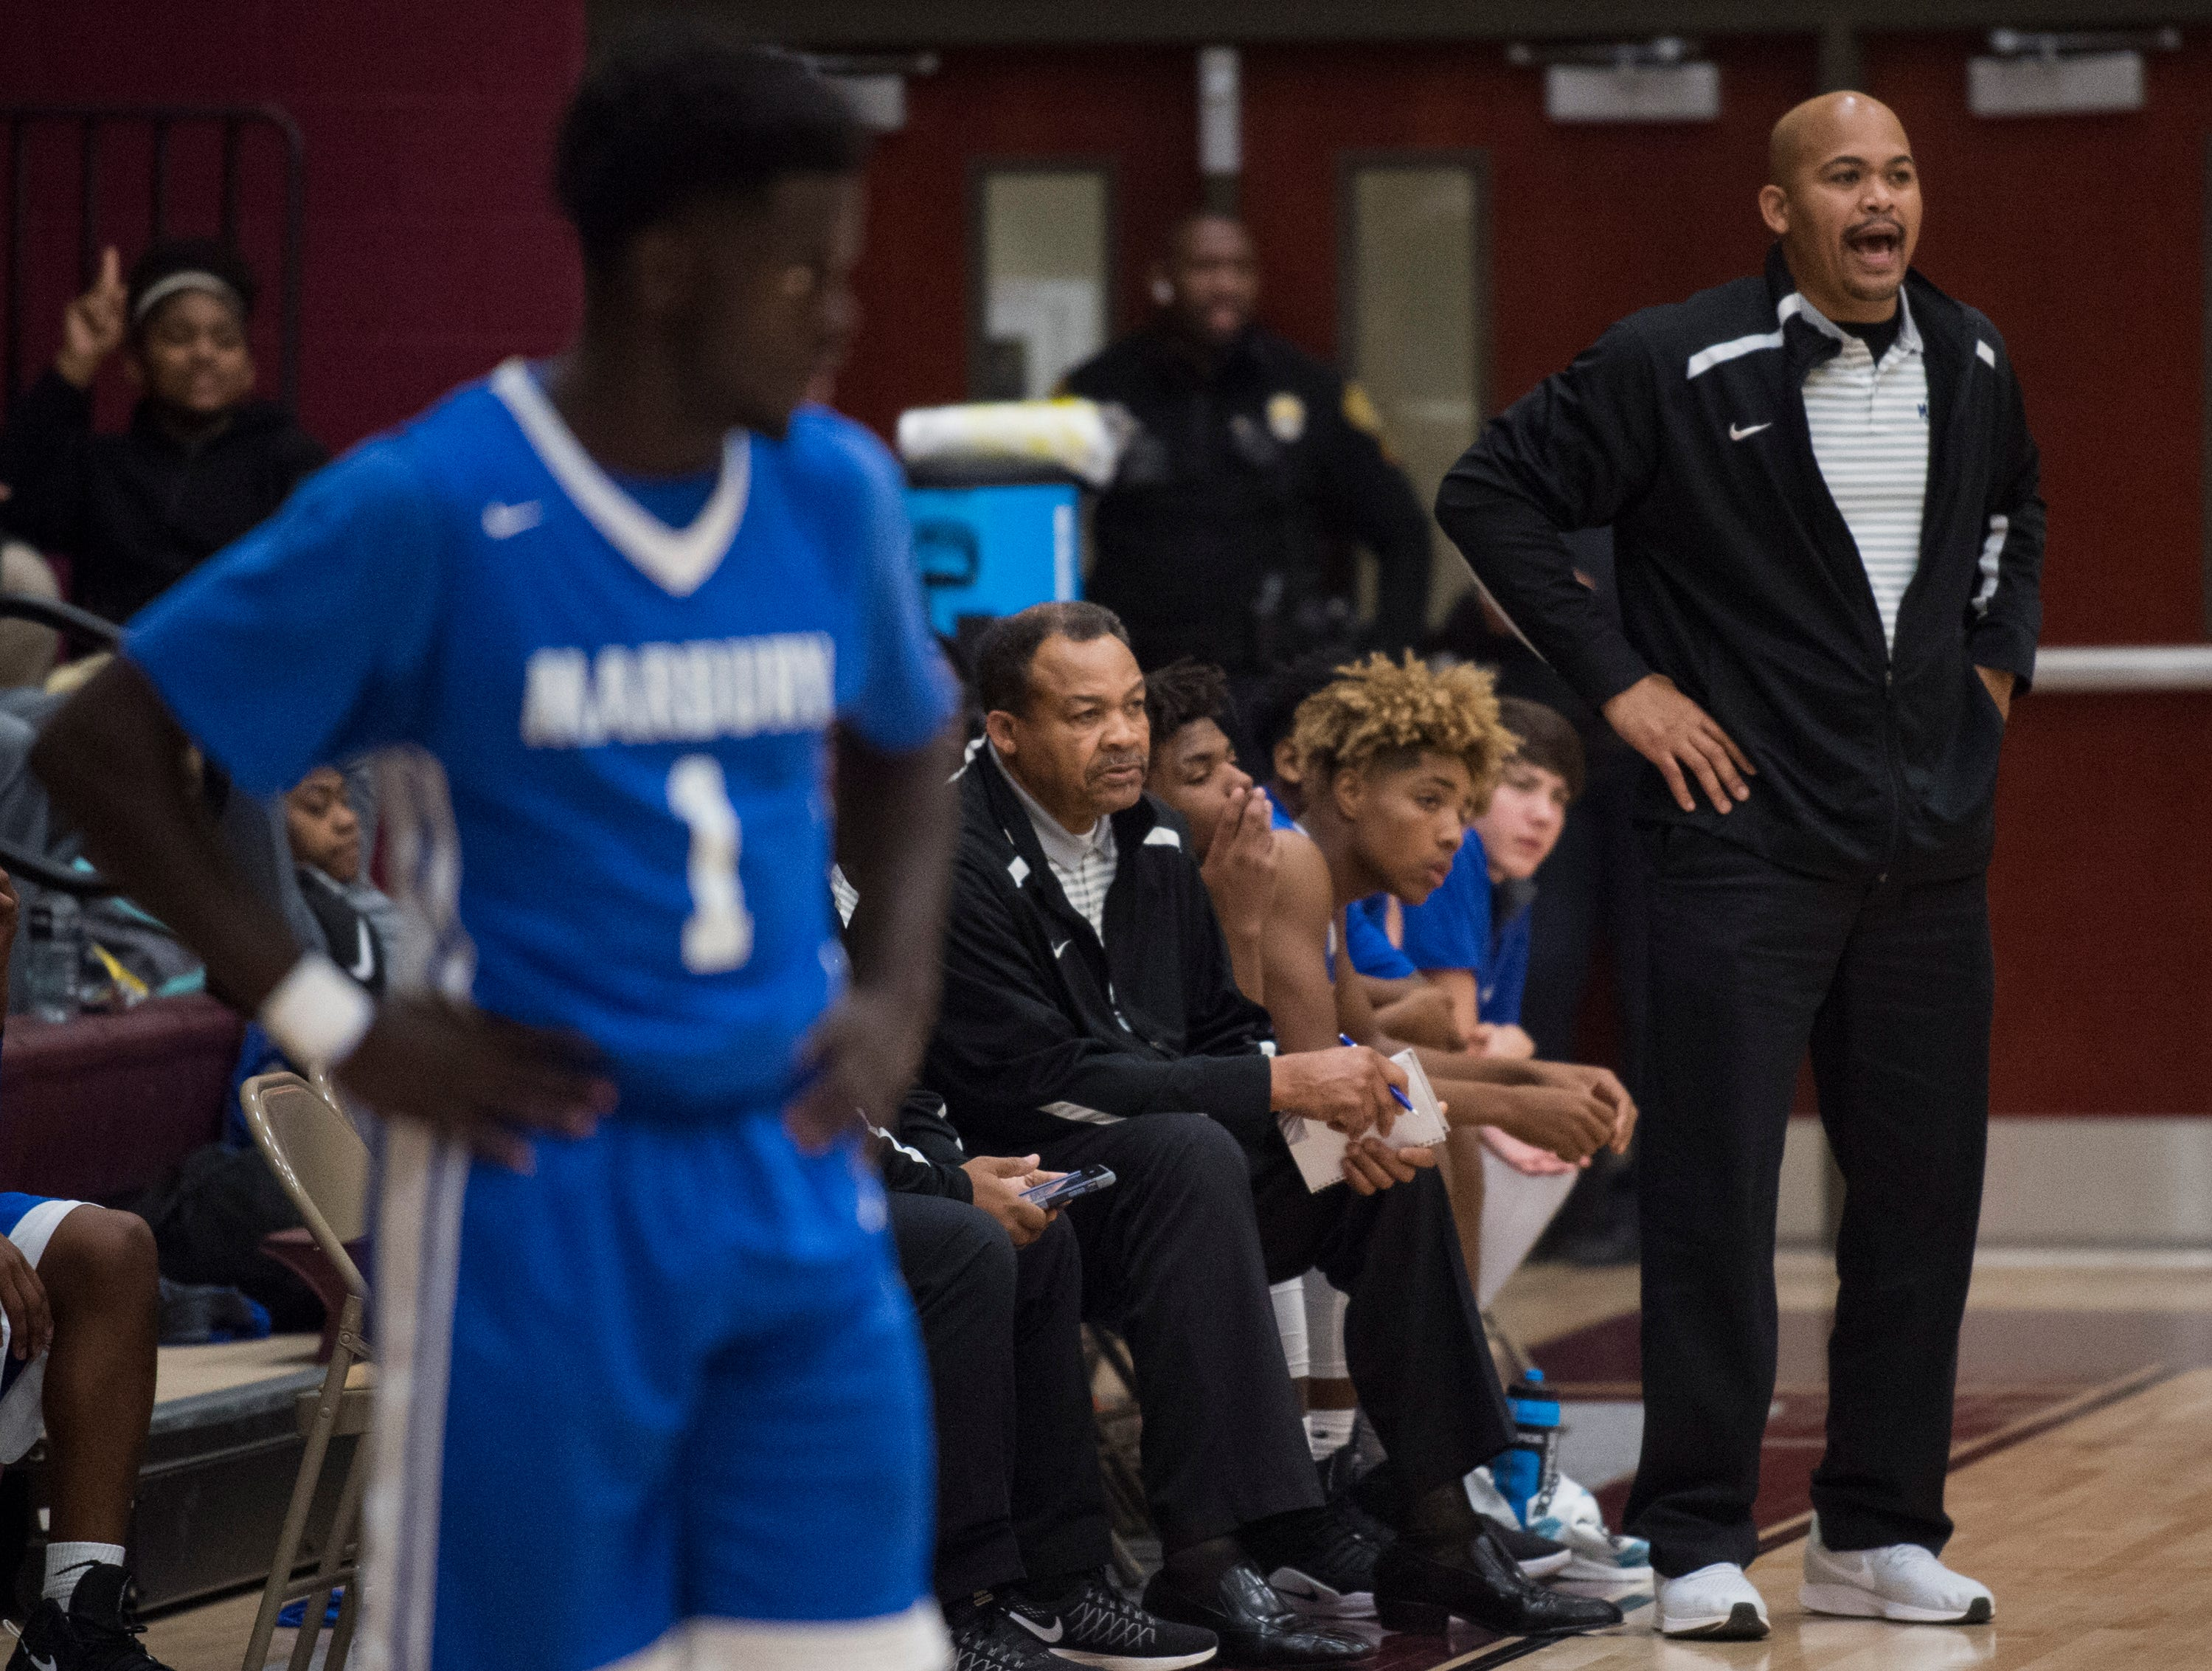 Marbury head coach Reginald Brown yells from the bench at LAMP high school in Montgomery, Ala., on Thursday, Jan. 10, 2019. LAMP defeated Marbury 85-72.